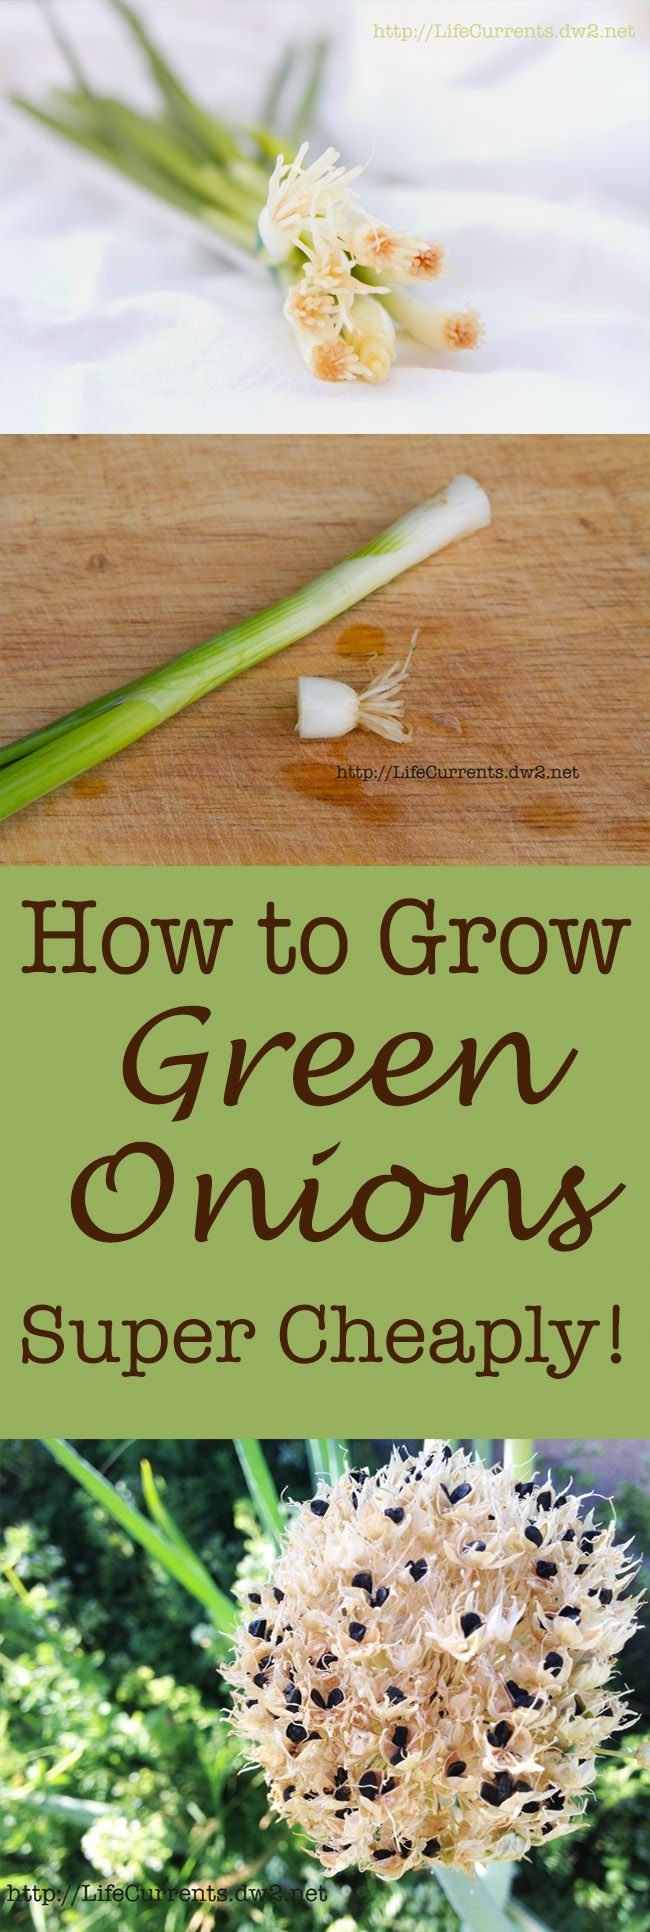 How to grow Green Onions cheaply, and what you can do with them. A free plant that gives greens, onion bulbs, and onion seeds. How cool is that!